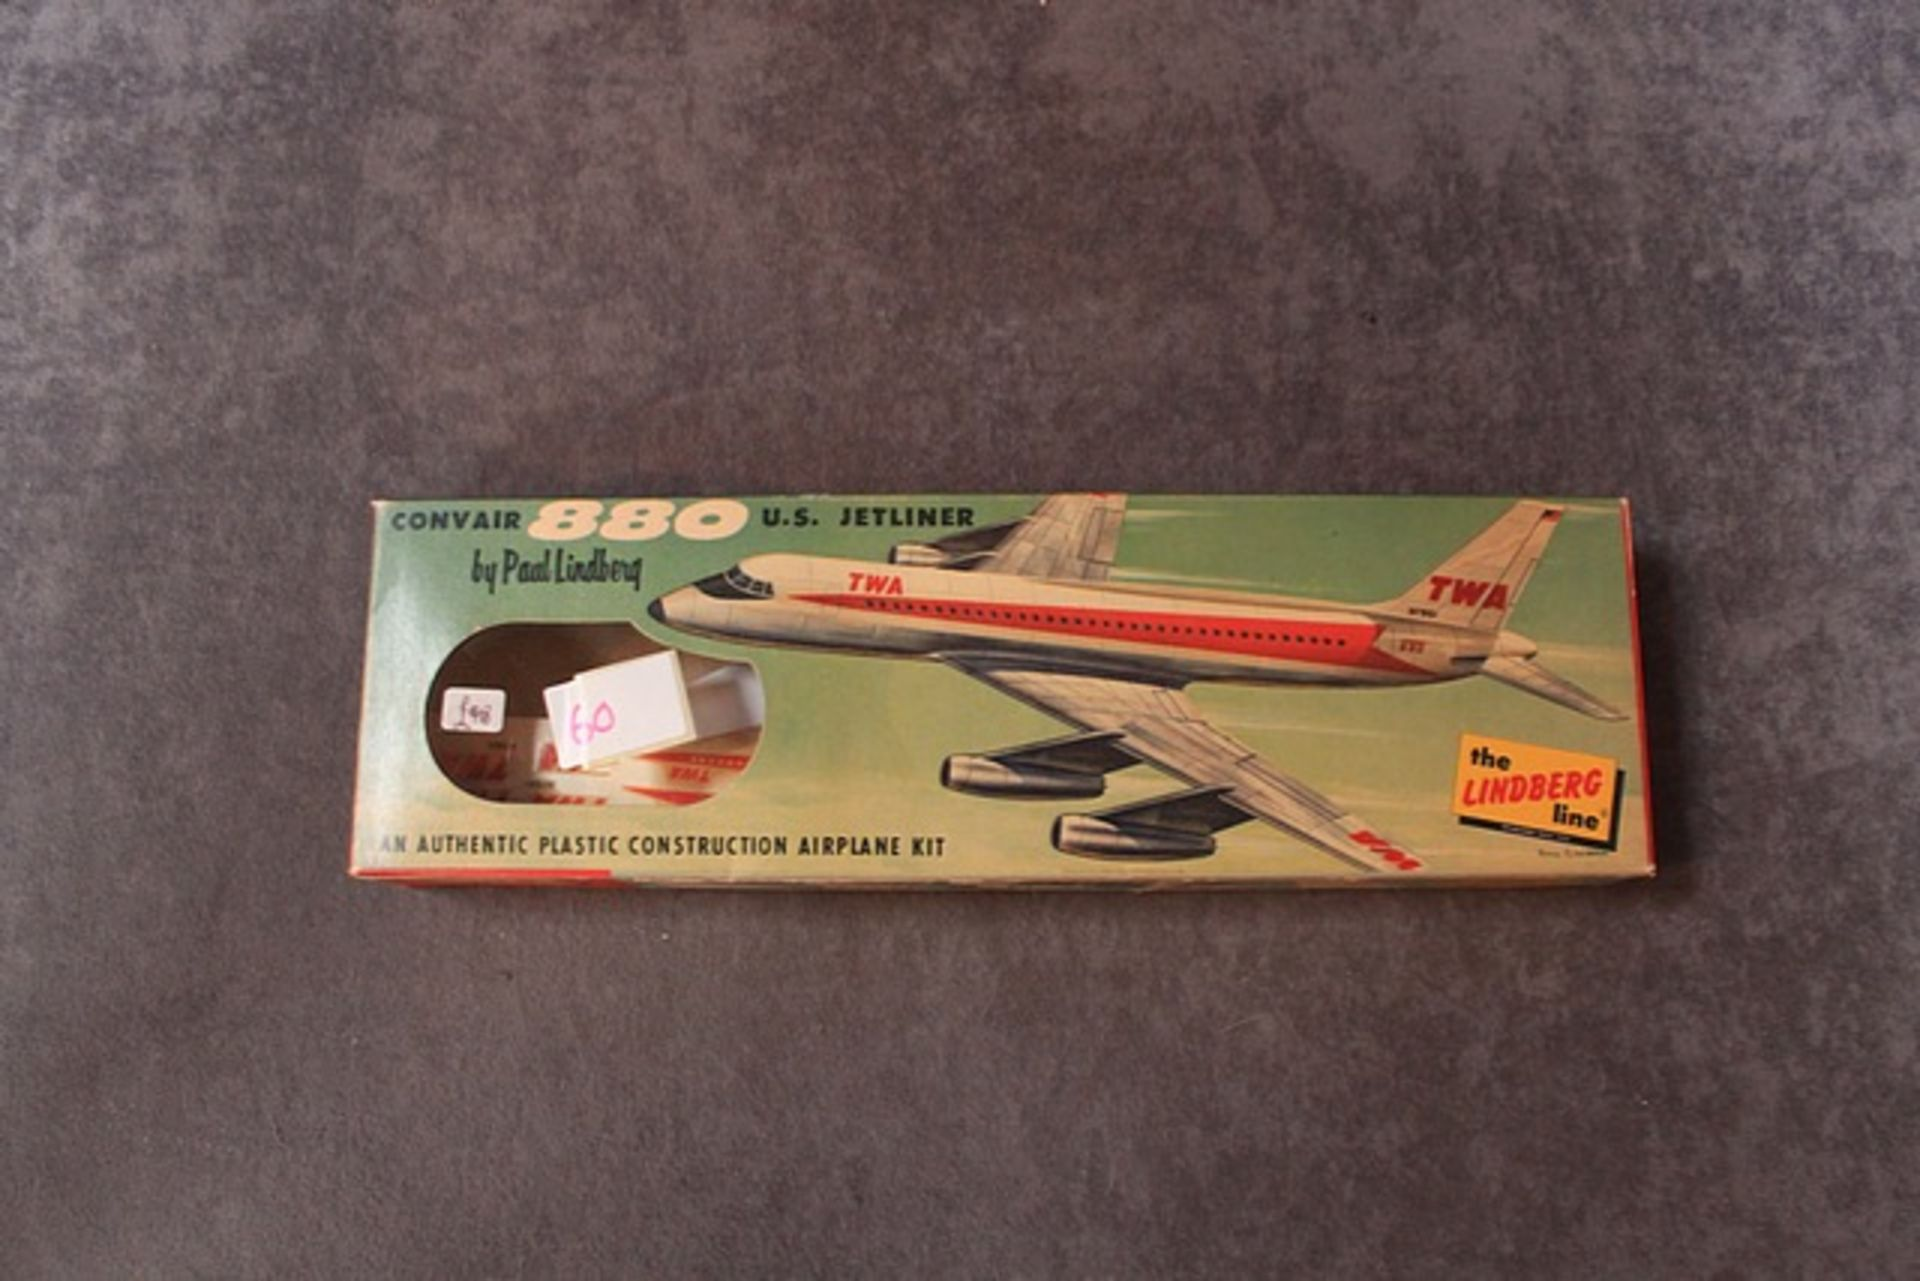 Lot 60 - The Lindberg Kit No 452:49 Conair 880 US Jetliner In Great Unopened Box